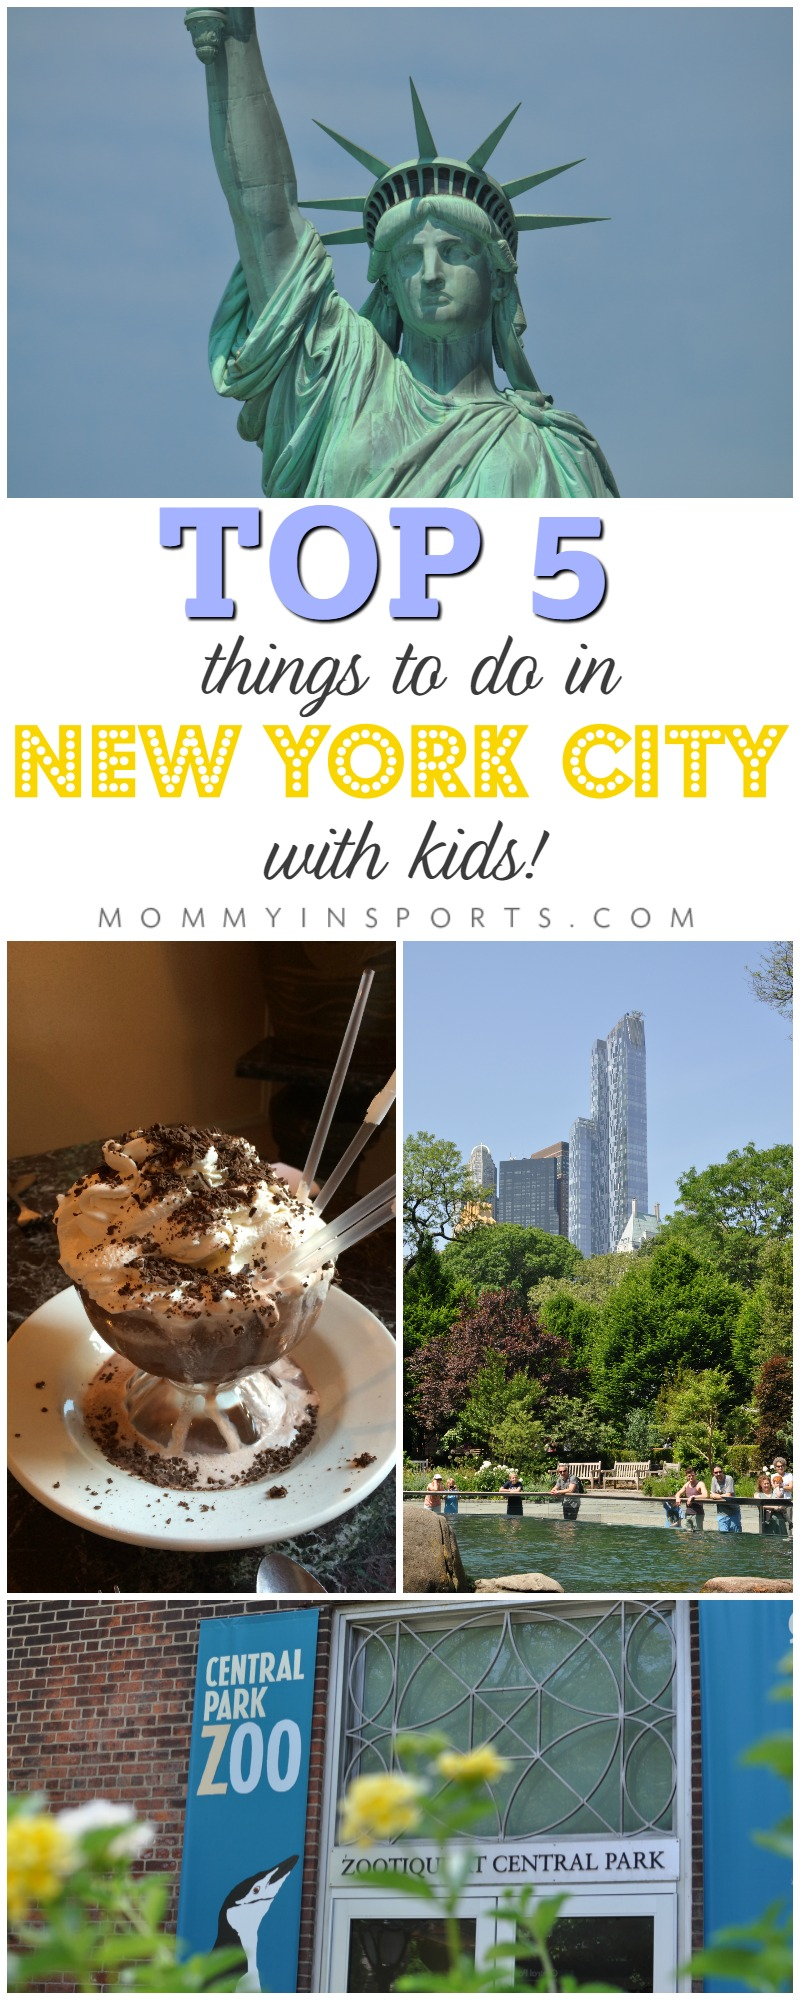 Top 5 things to do in new york city with kids kristen hewitt for Best stuff to do in nyc